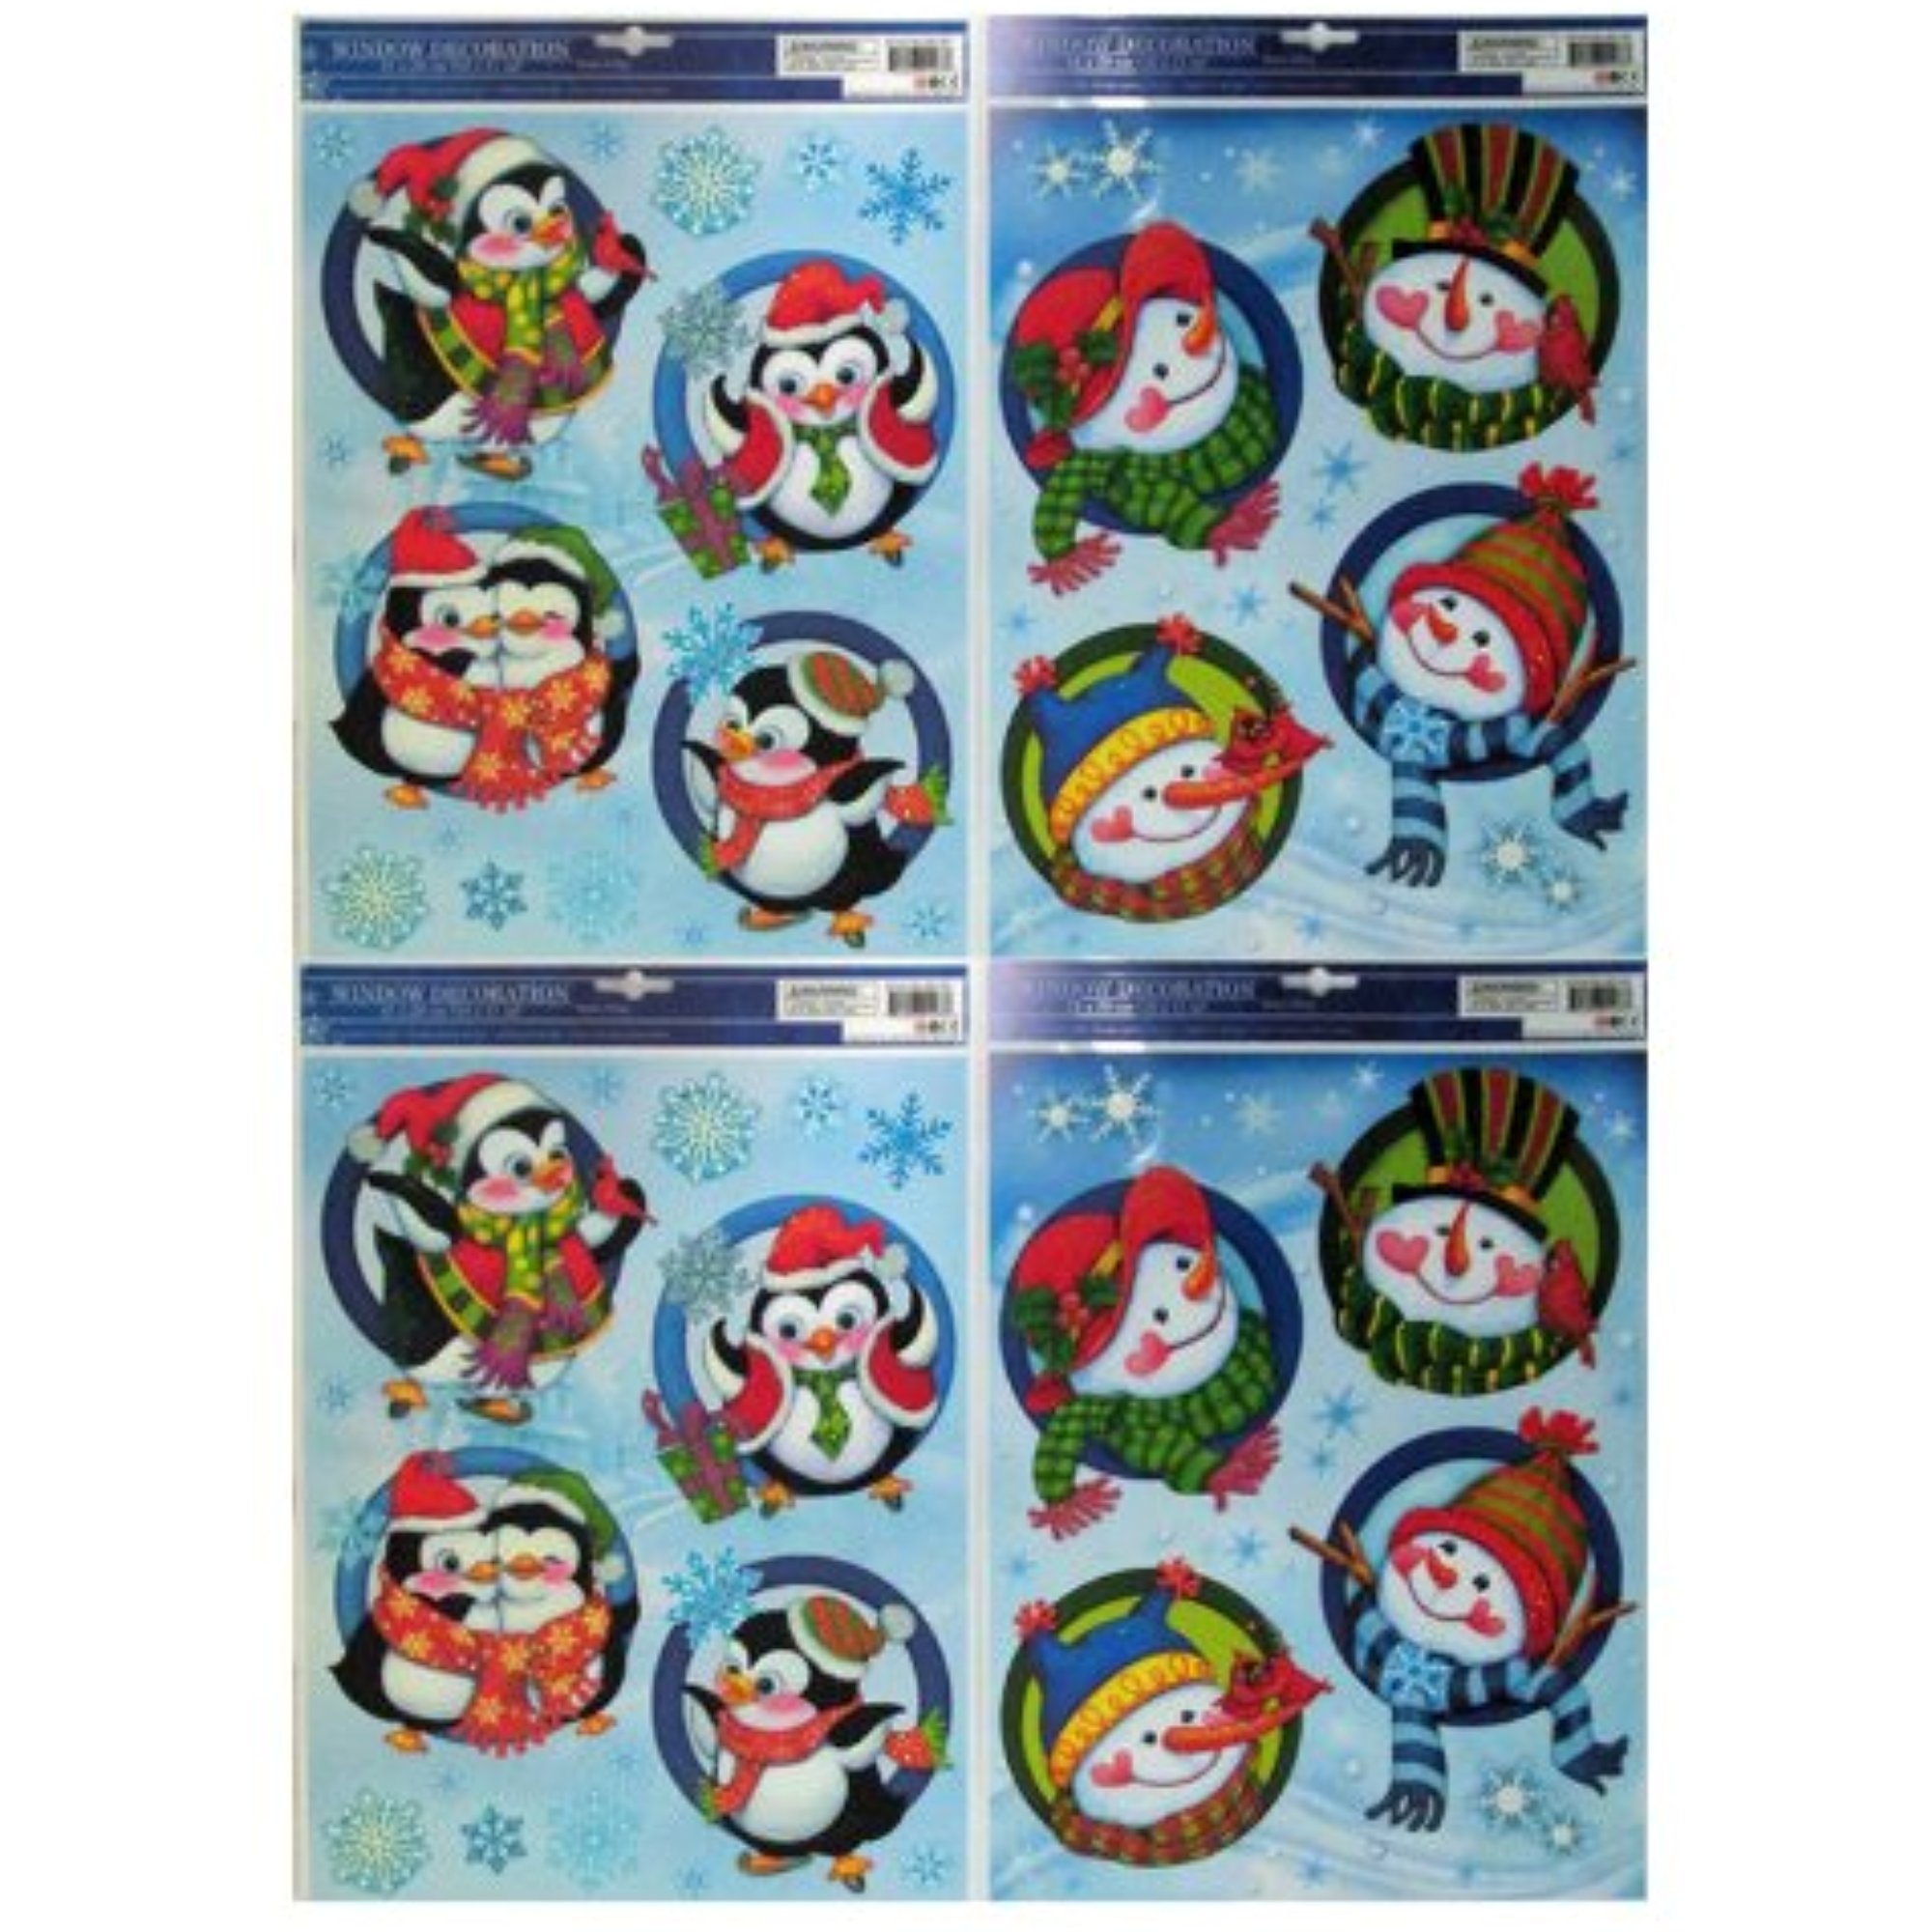 "Christmas Snowman/Penguin Window Cling 16"" x 11"" Sheet - (40) Individual Clings on Four Sheets"